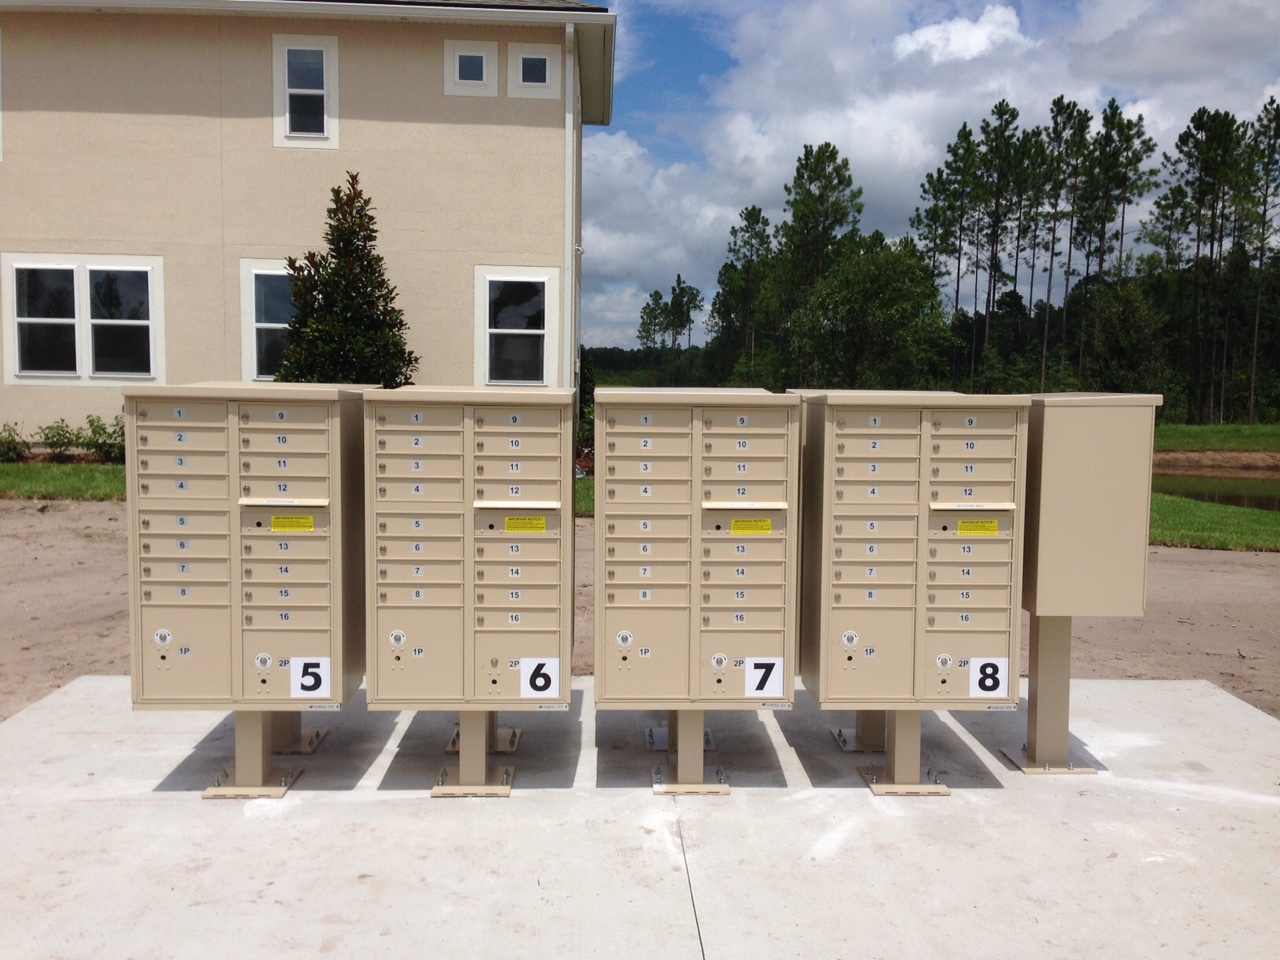 Centralized Delivery Cluster Mailboxes (CBU)